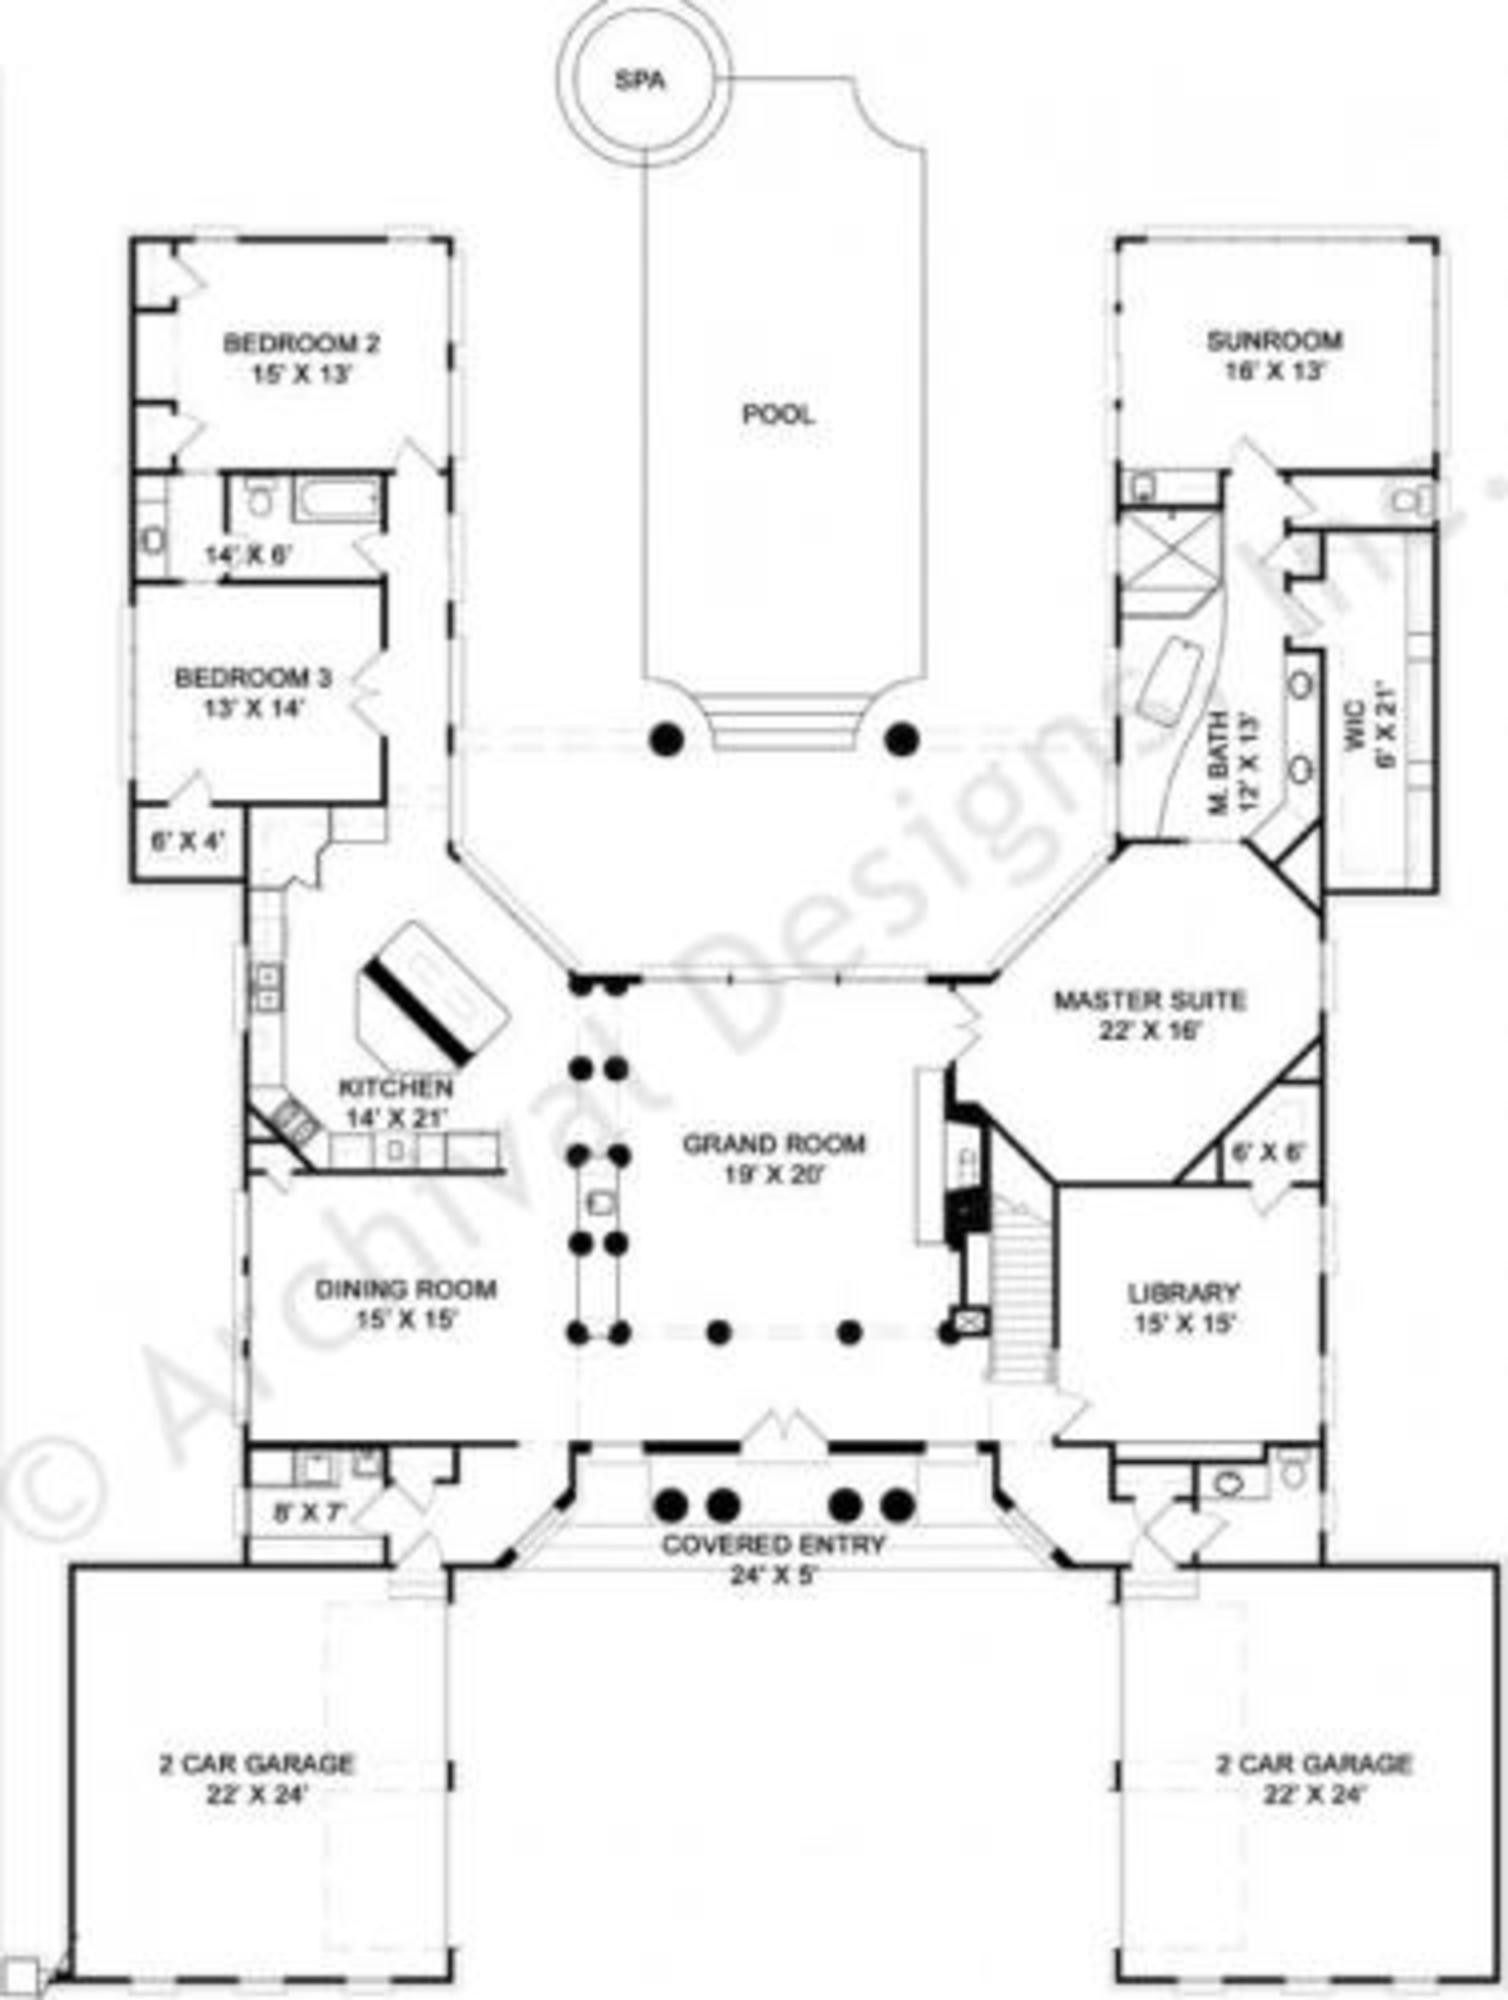 Bedroom House Plans With Courtyard Unique Sample Floor Fresh Split Small Bedrooms Modern And Single In 2020 Pool House Plans U Shaped House Plans Courtyard House Plans